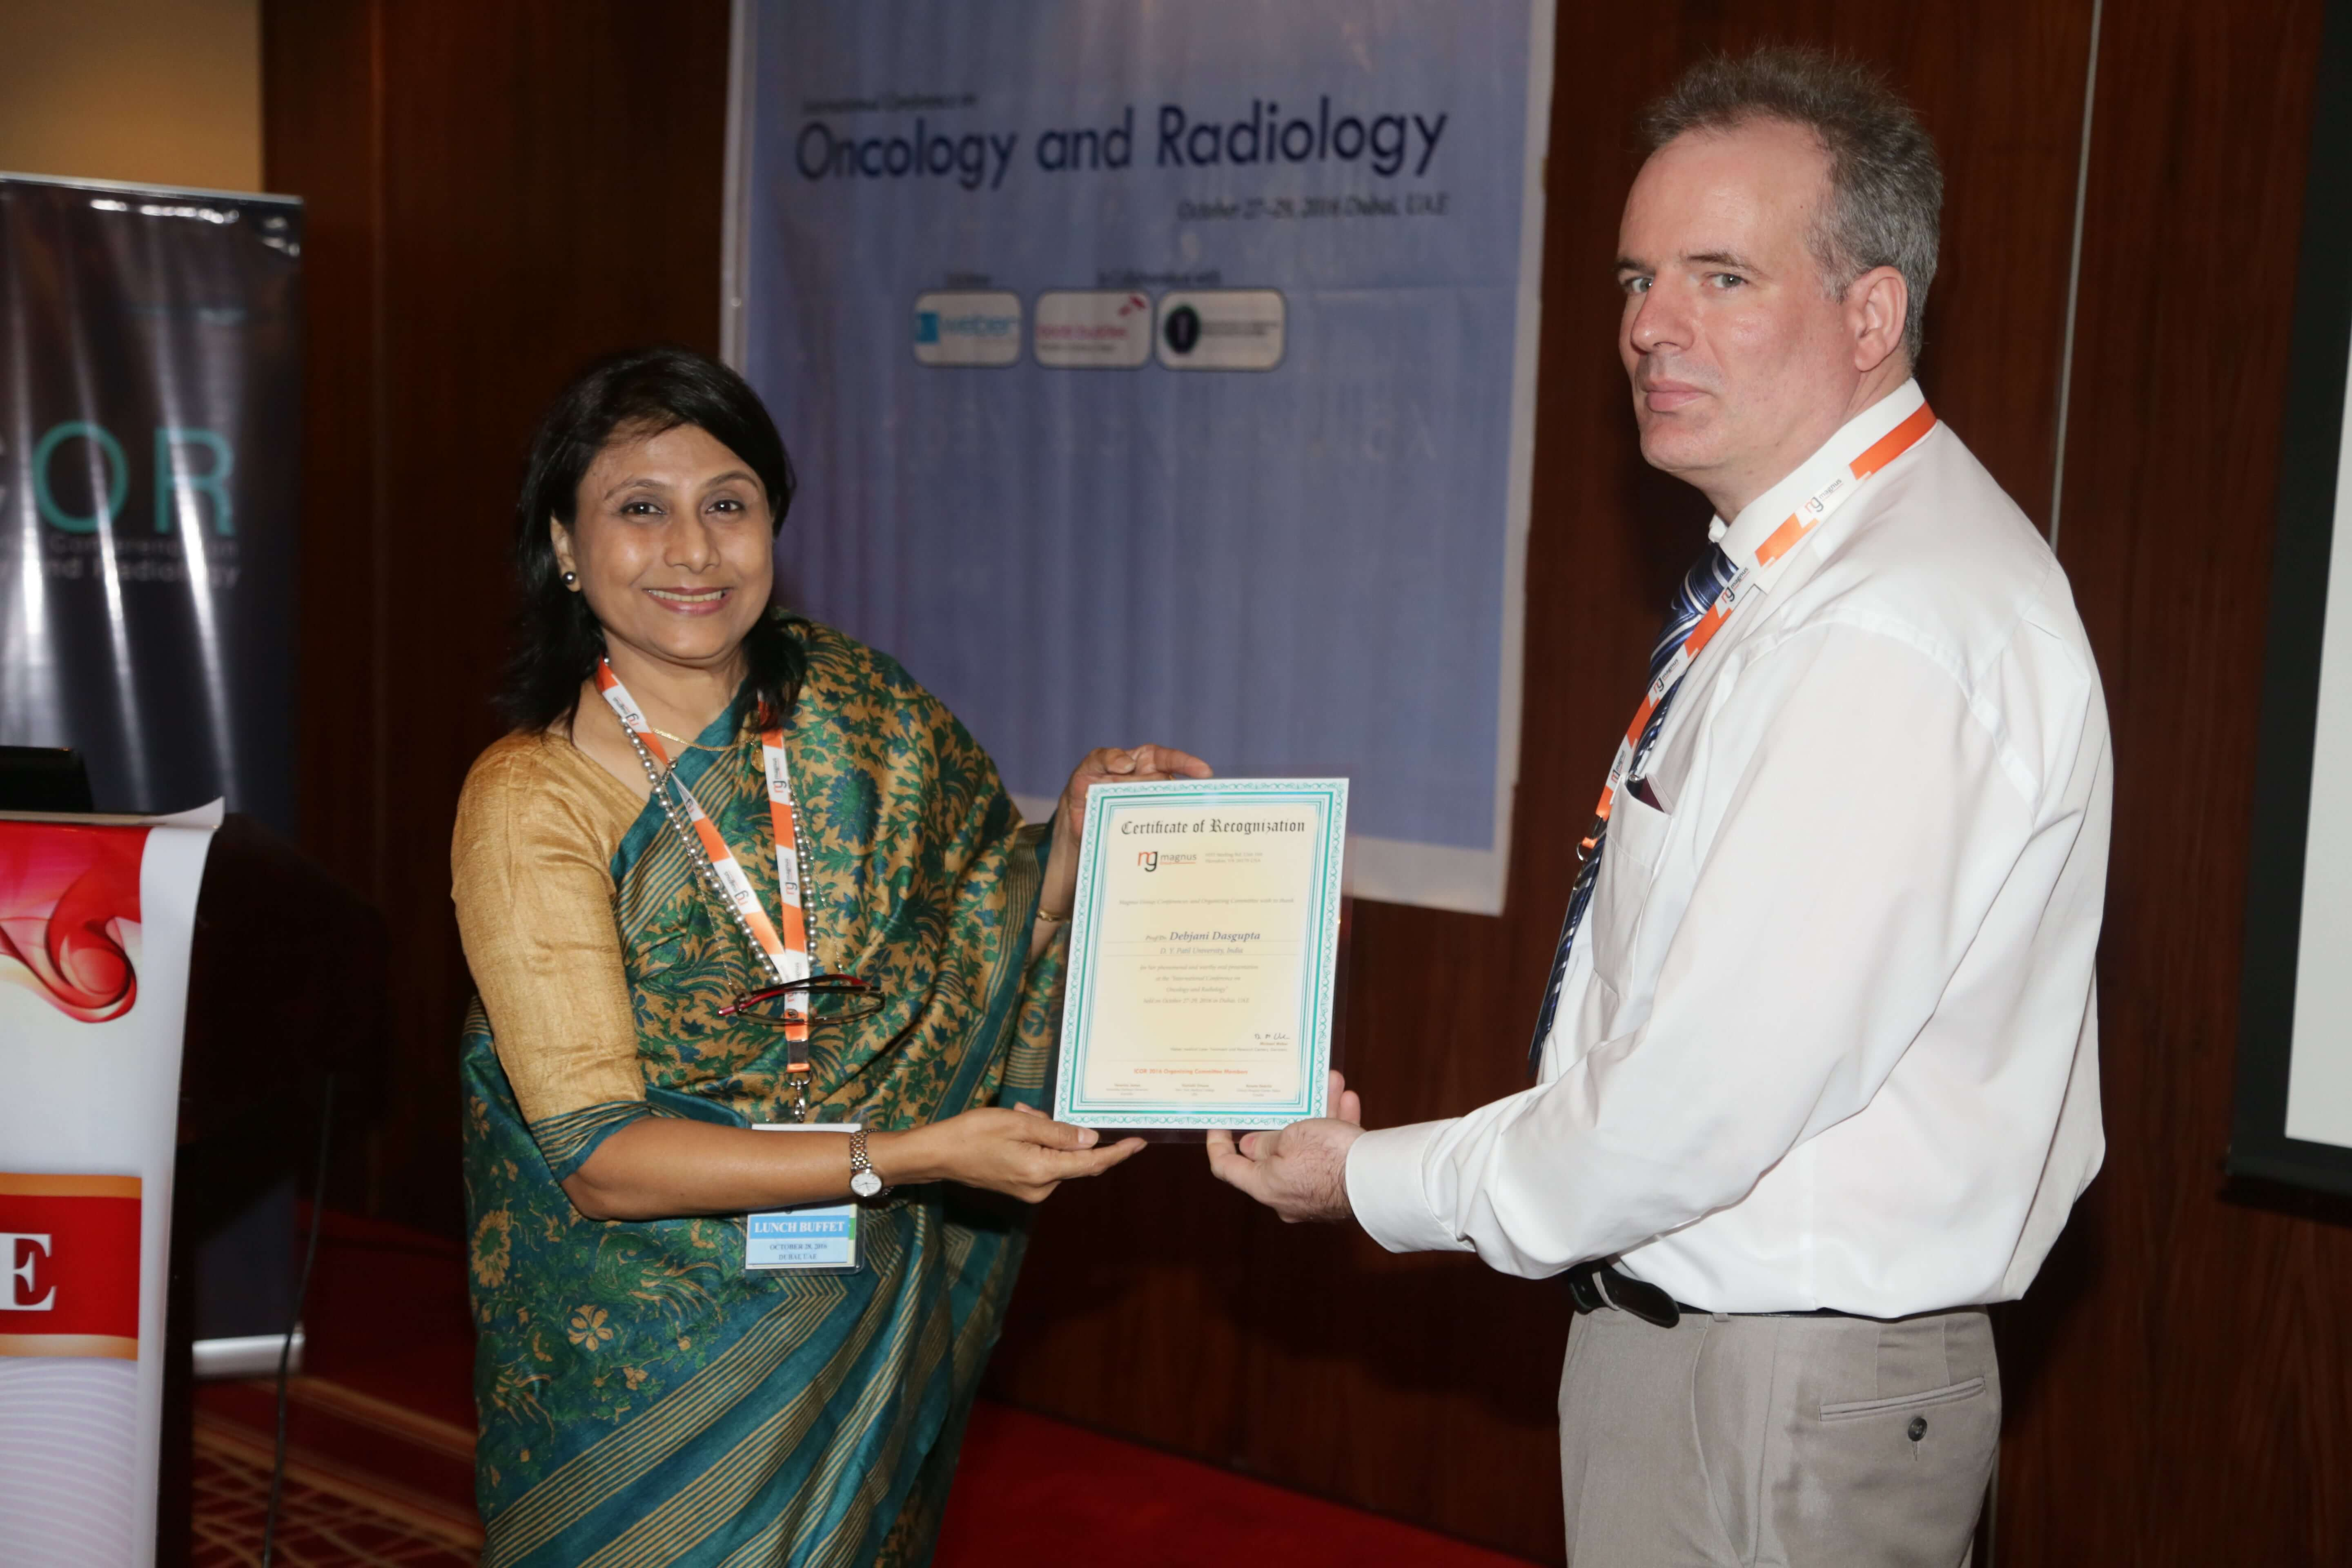 Cancer Congress - Dr. Debjani Dasgupta